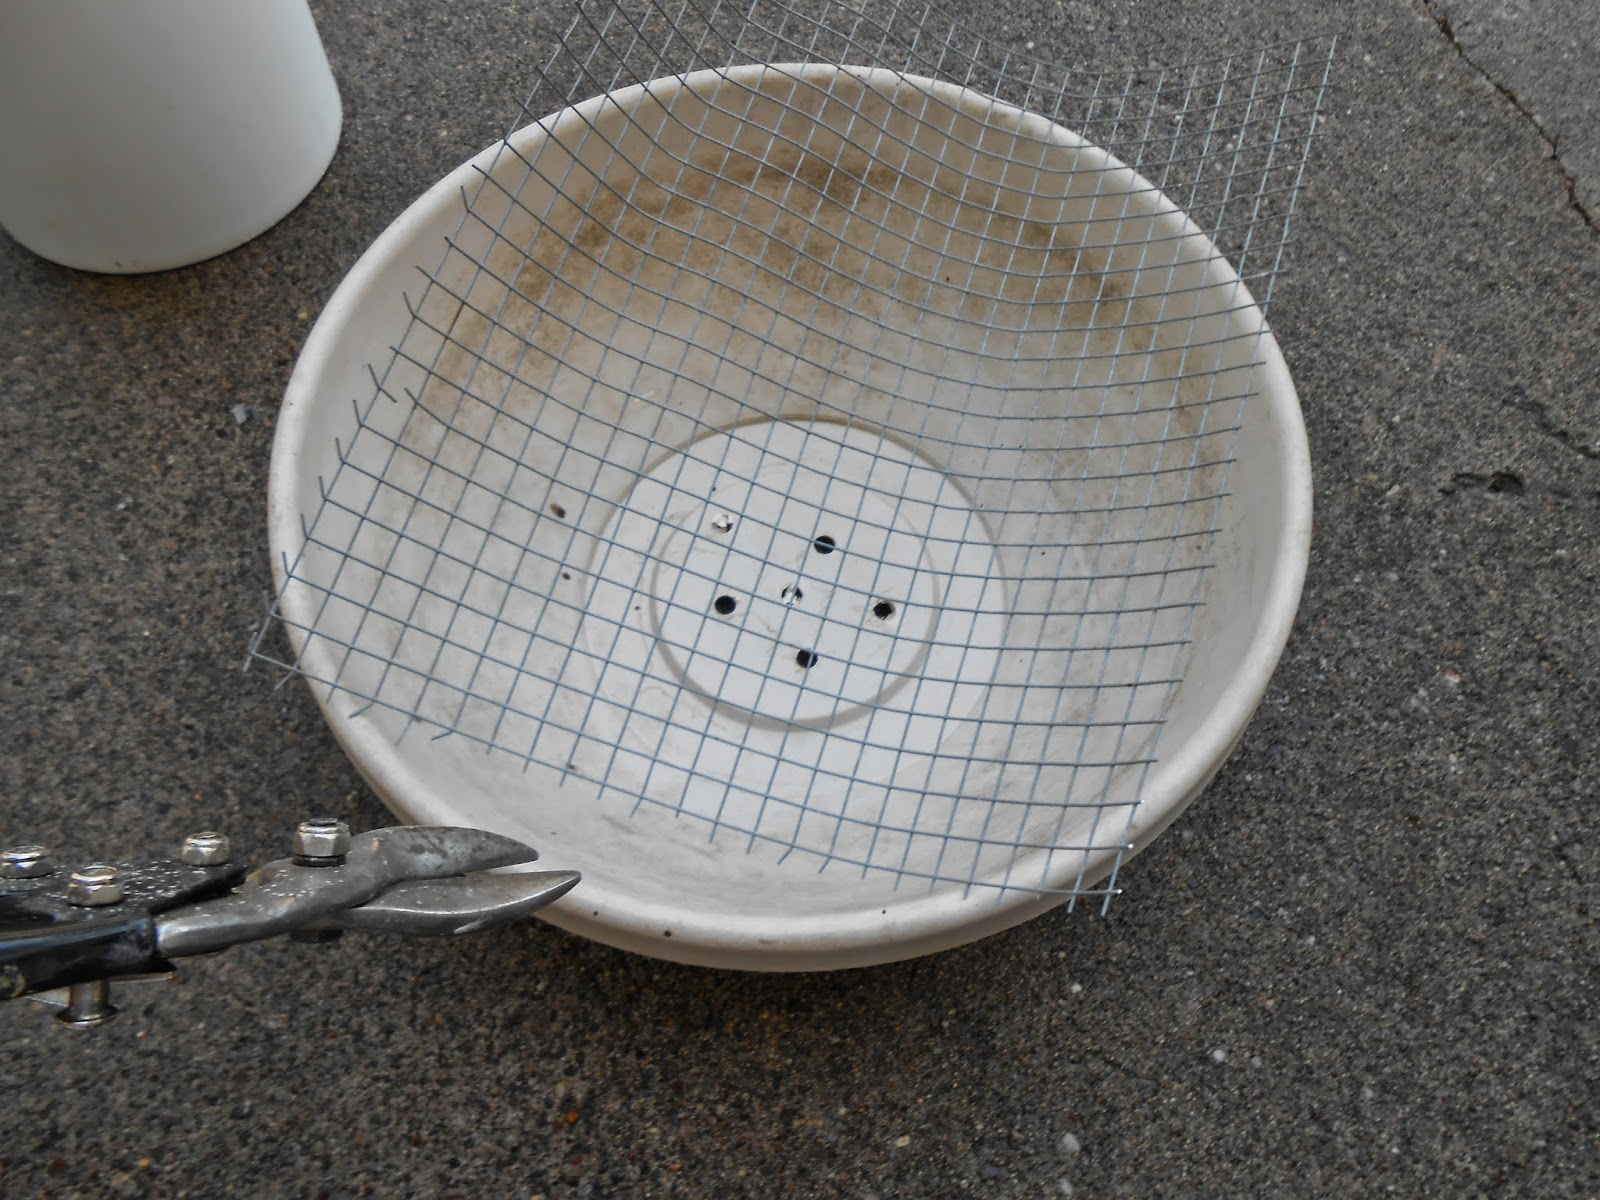 How to make a birdbath - 2 Clean And Dry The Molds You Are Going To Use 3 Trim Your Hardware Cloth To Fit In The Molds Make Sure It Is Smaller Than The Mold For The Bowl